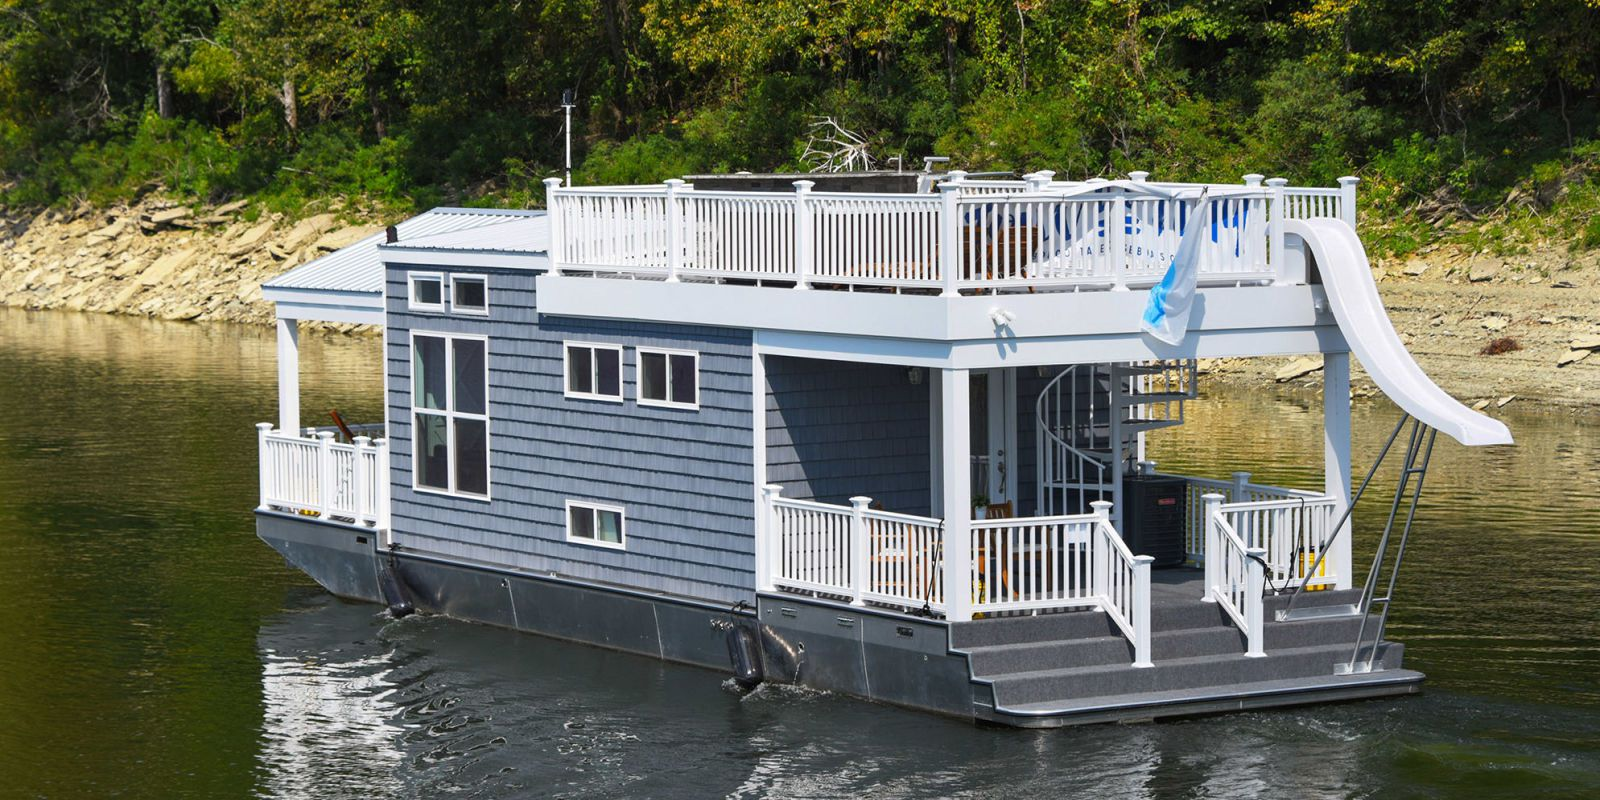 Blue Tiny Houseboat